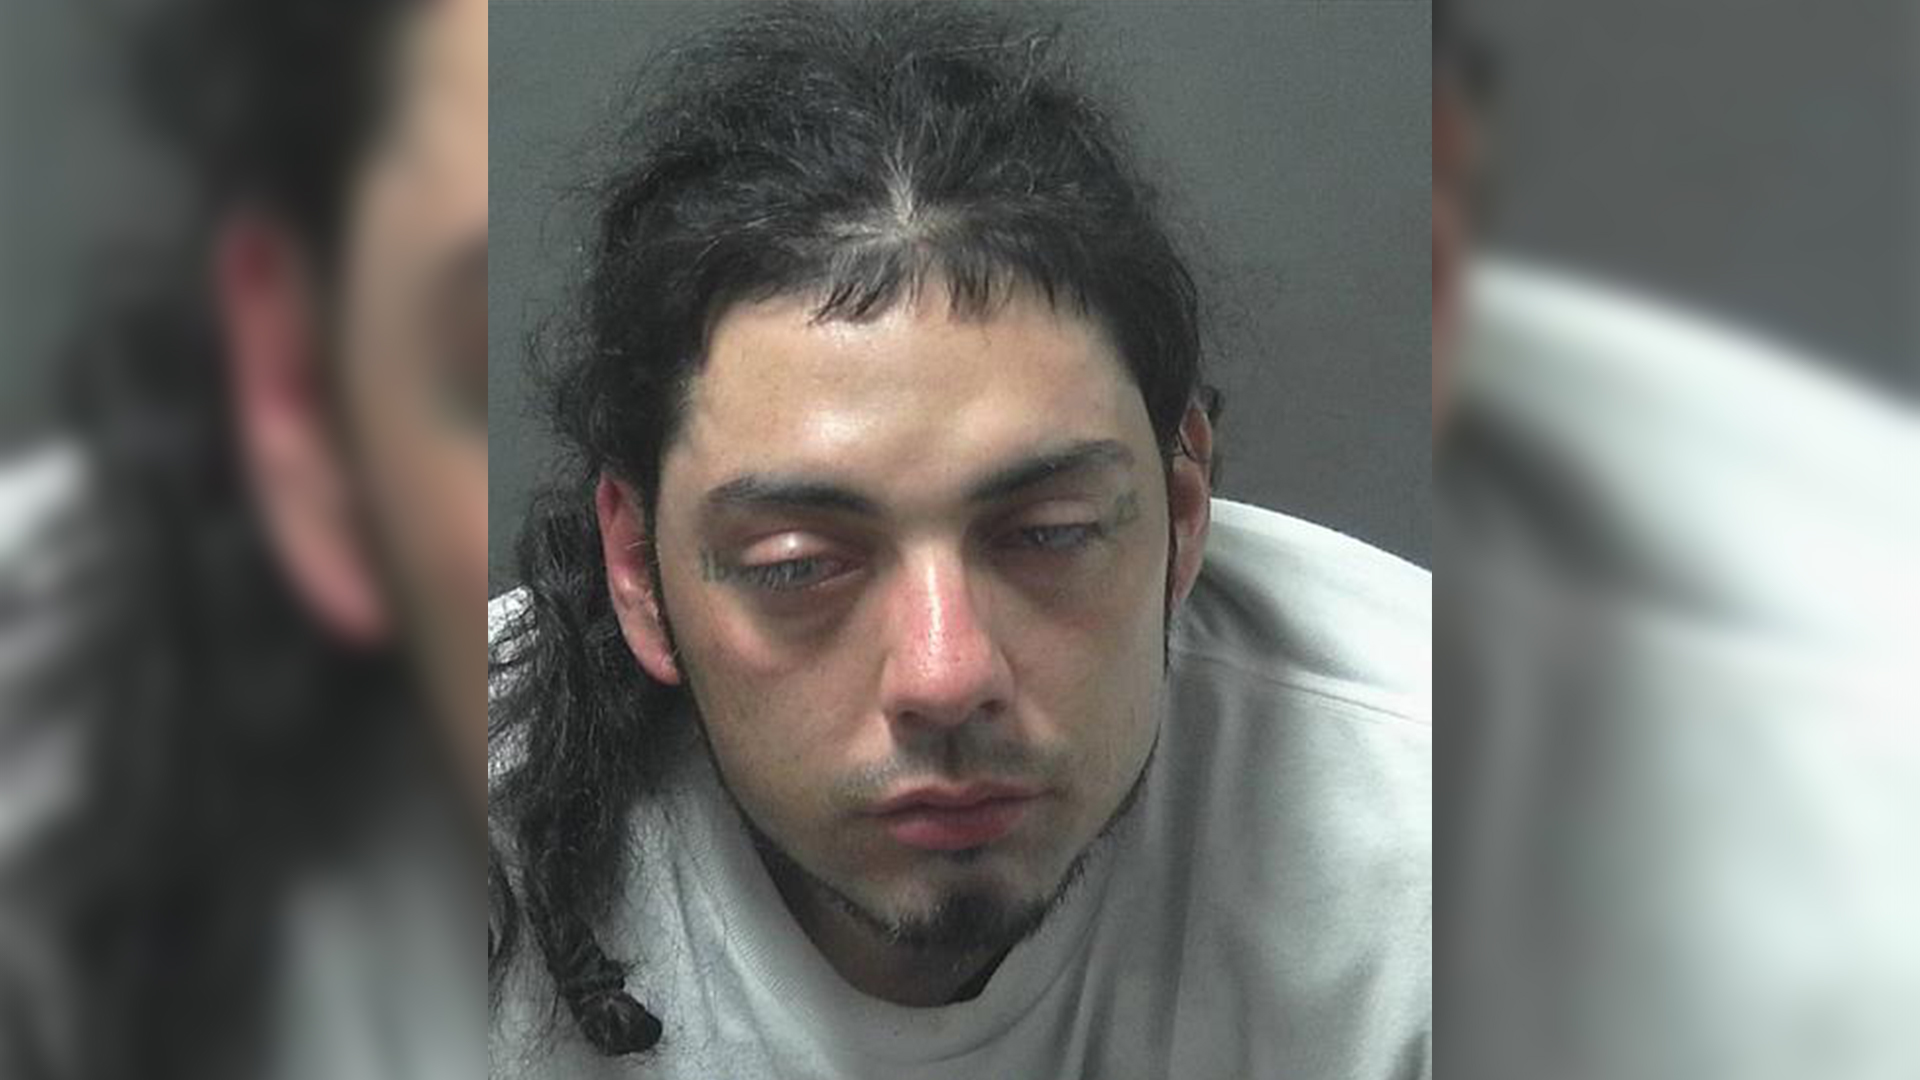 Anthony Barker, 32 (image courtesy of the Kings County Sheriff's Office)